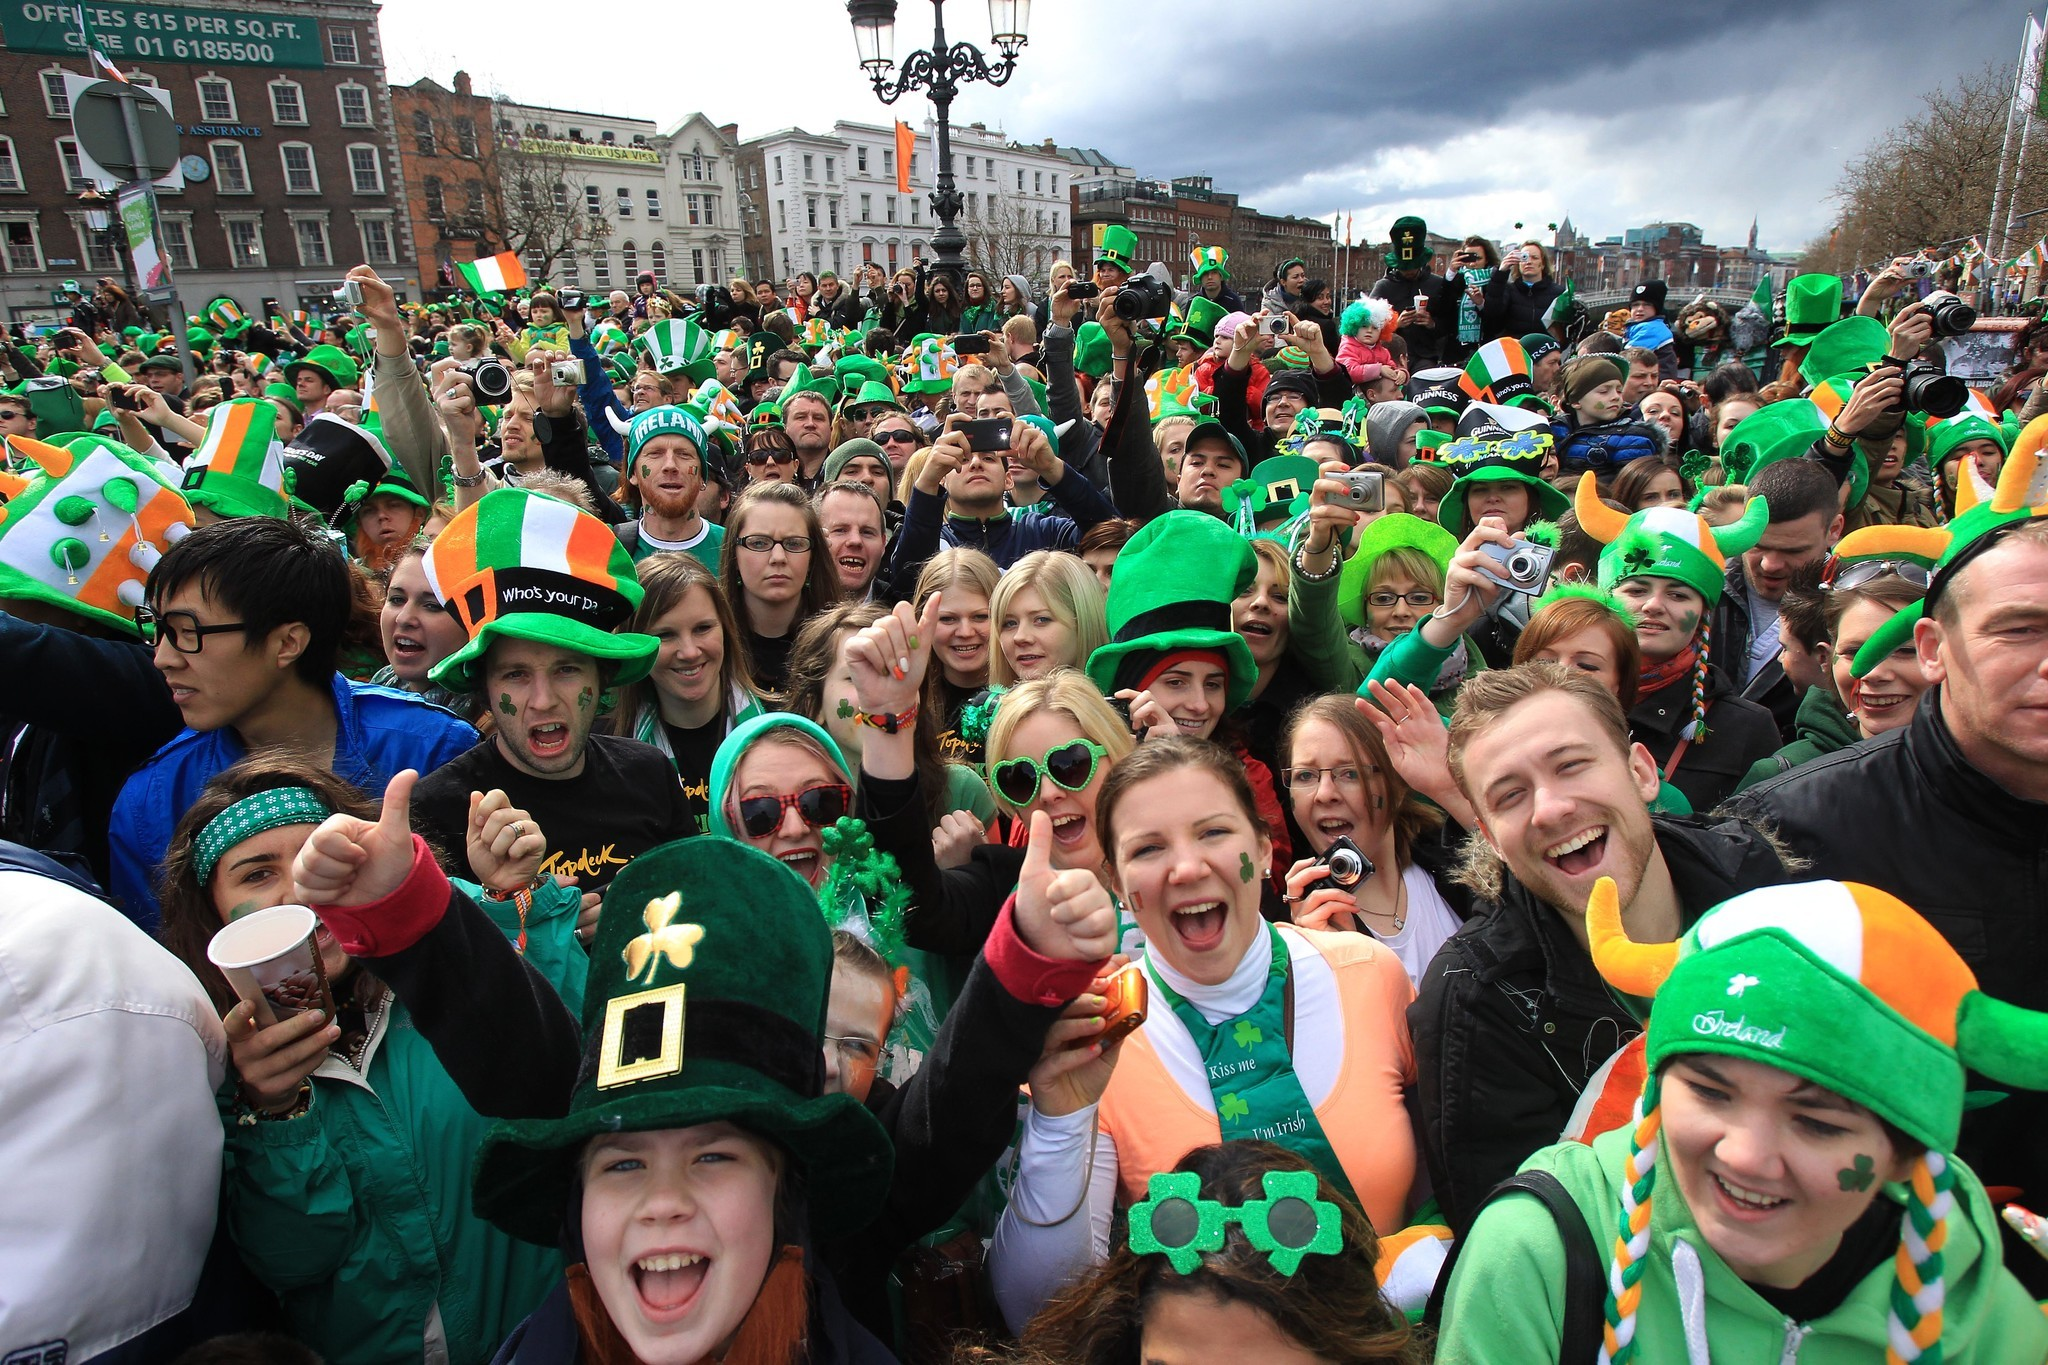 St. Patrick's Day trees are the latest rage in Ireland as holiday parades canceled due to coronavirus